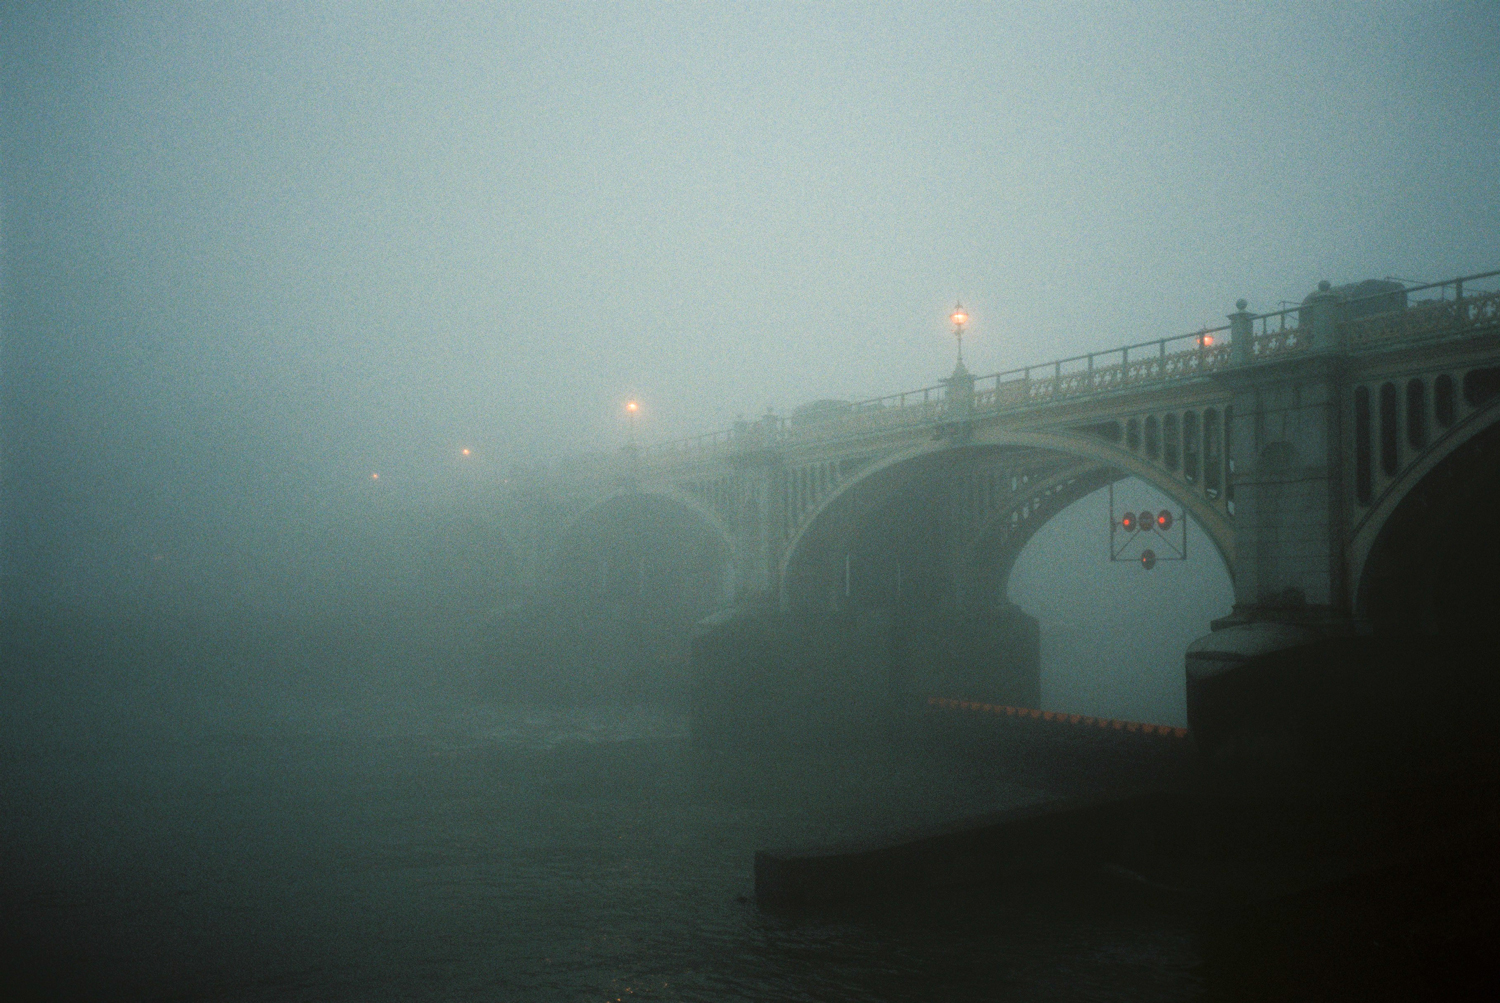 16_richmond_bridge_fog.jpg